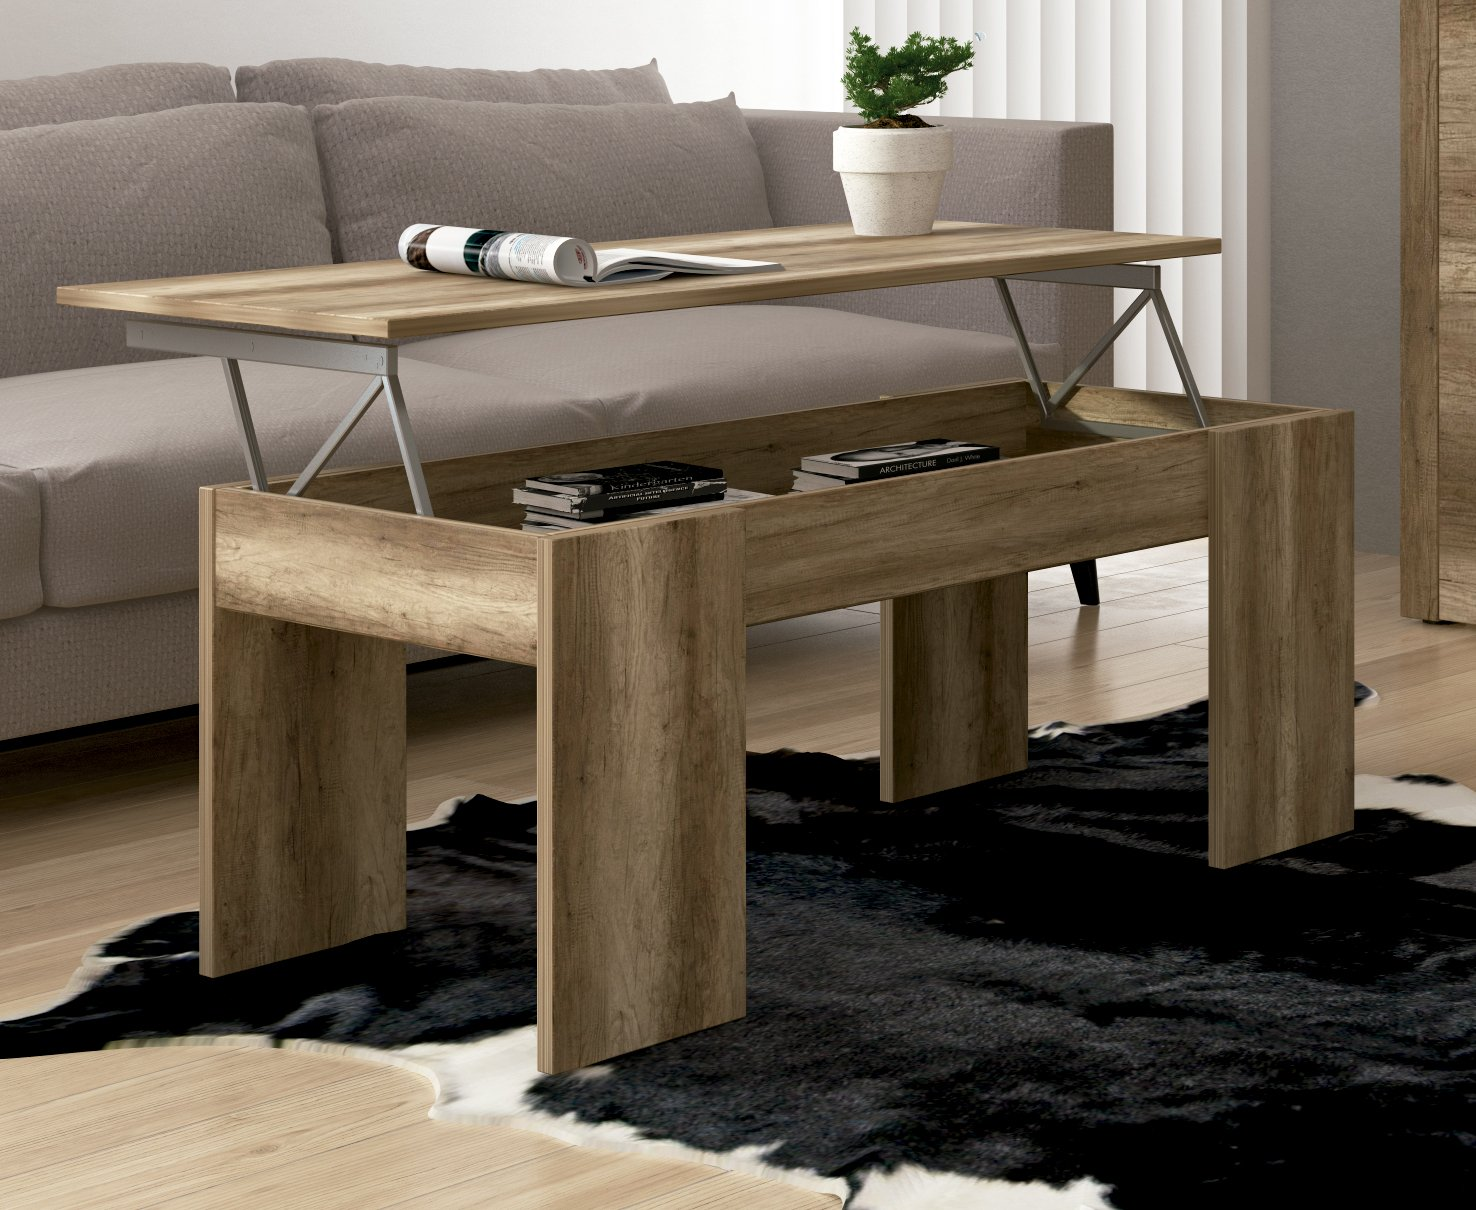 Studio Decor Lara - Mesa de centro elevable, Madera, Marrón, 100x50x45 cm